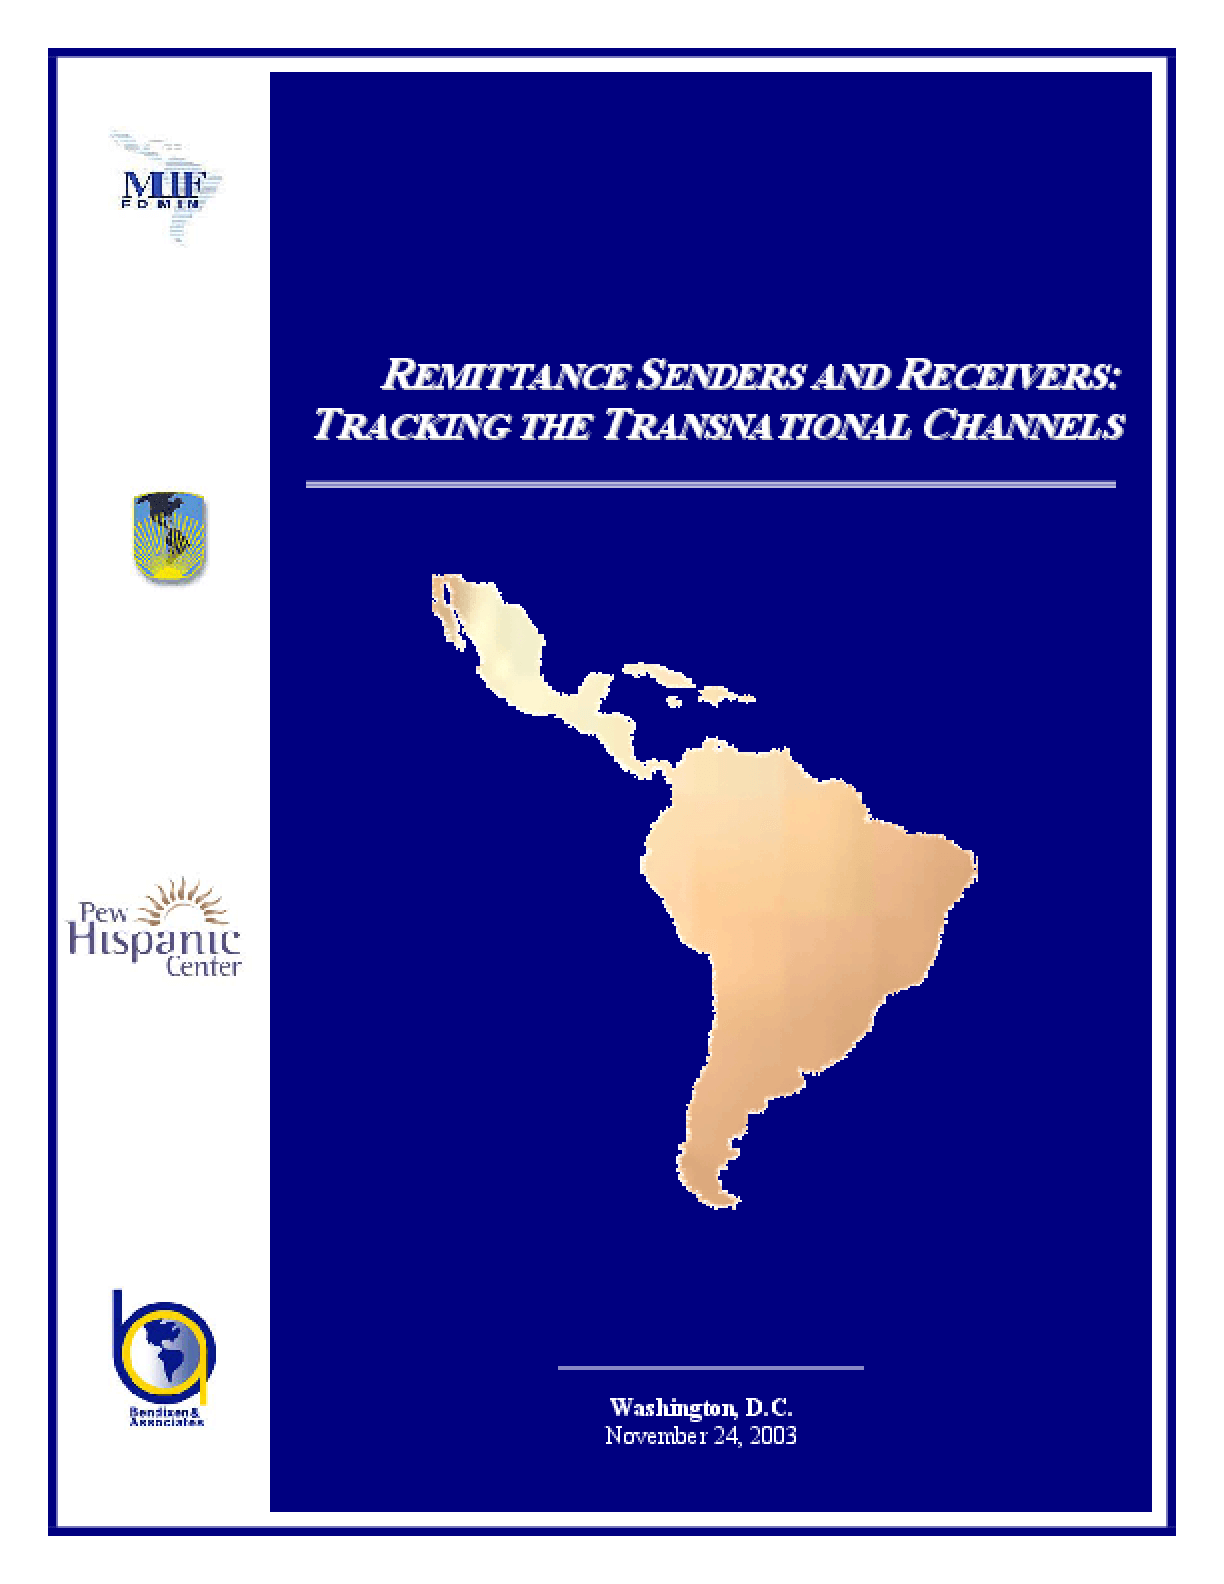 Remittance Senders and Receivers: Tracking the Transnational Channels